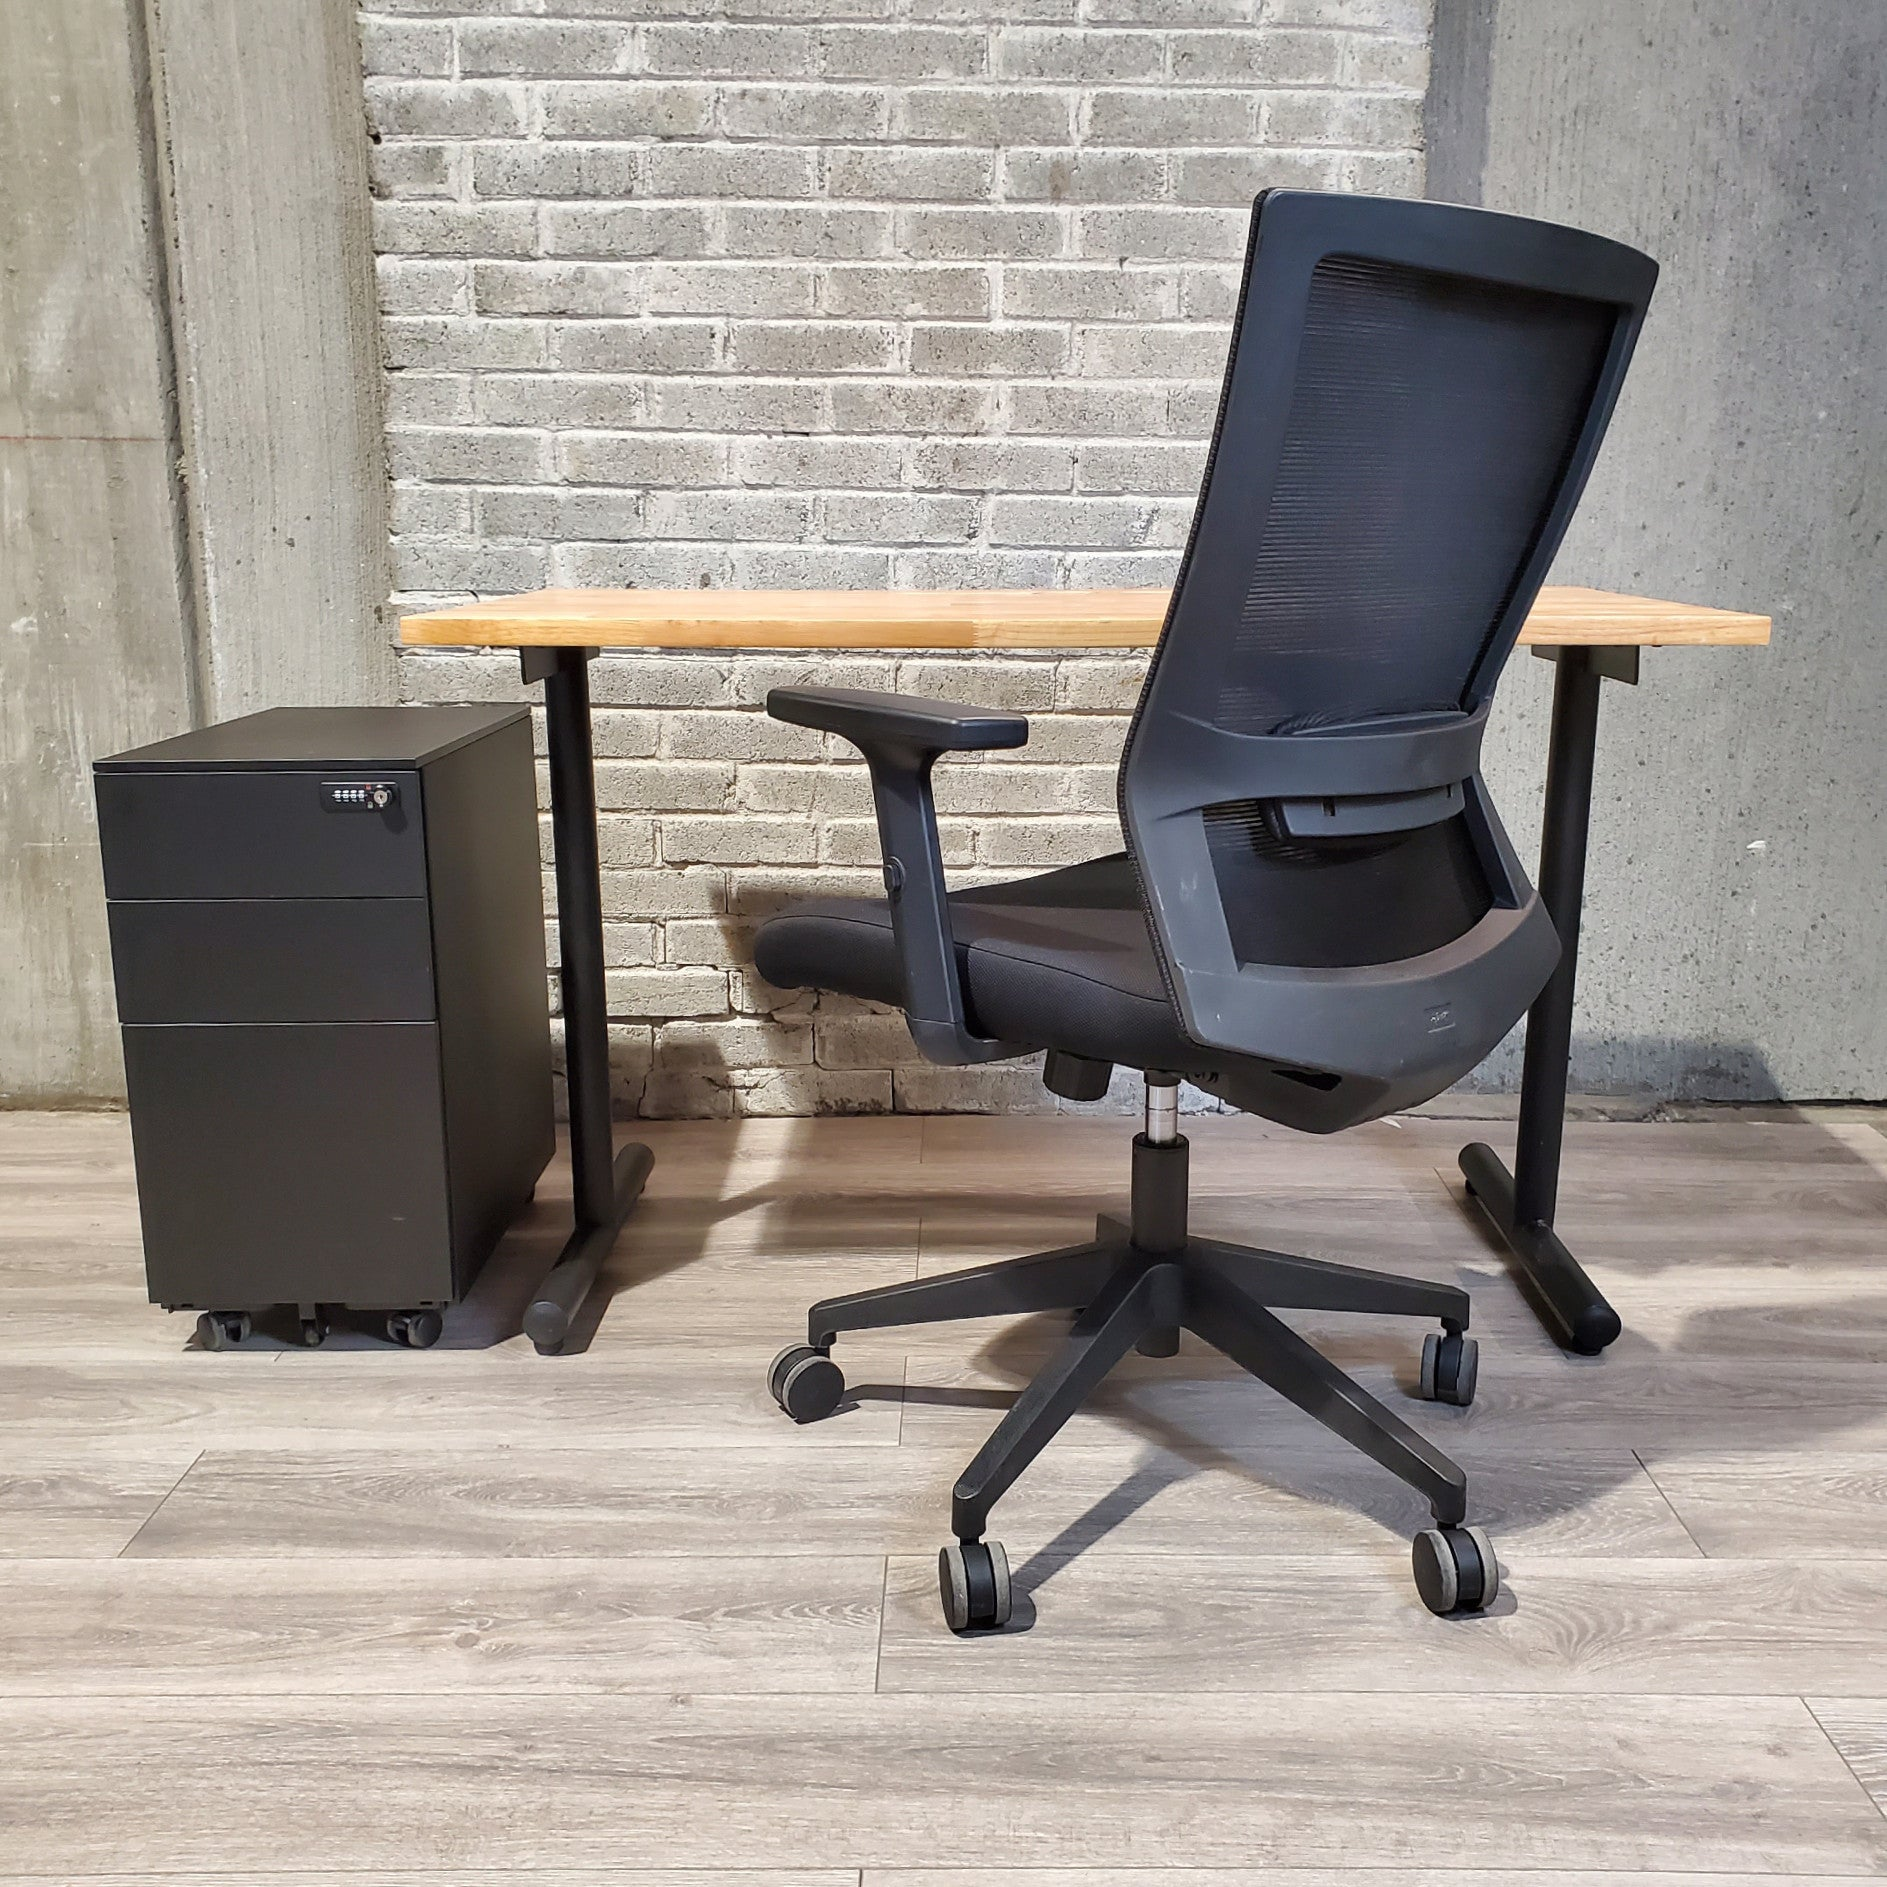 Used 24x48 Desk Chair Pedestal Drawer Combo Deal - Duckys Office Furniture